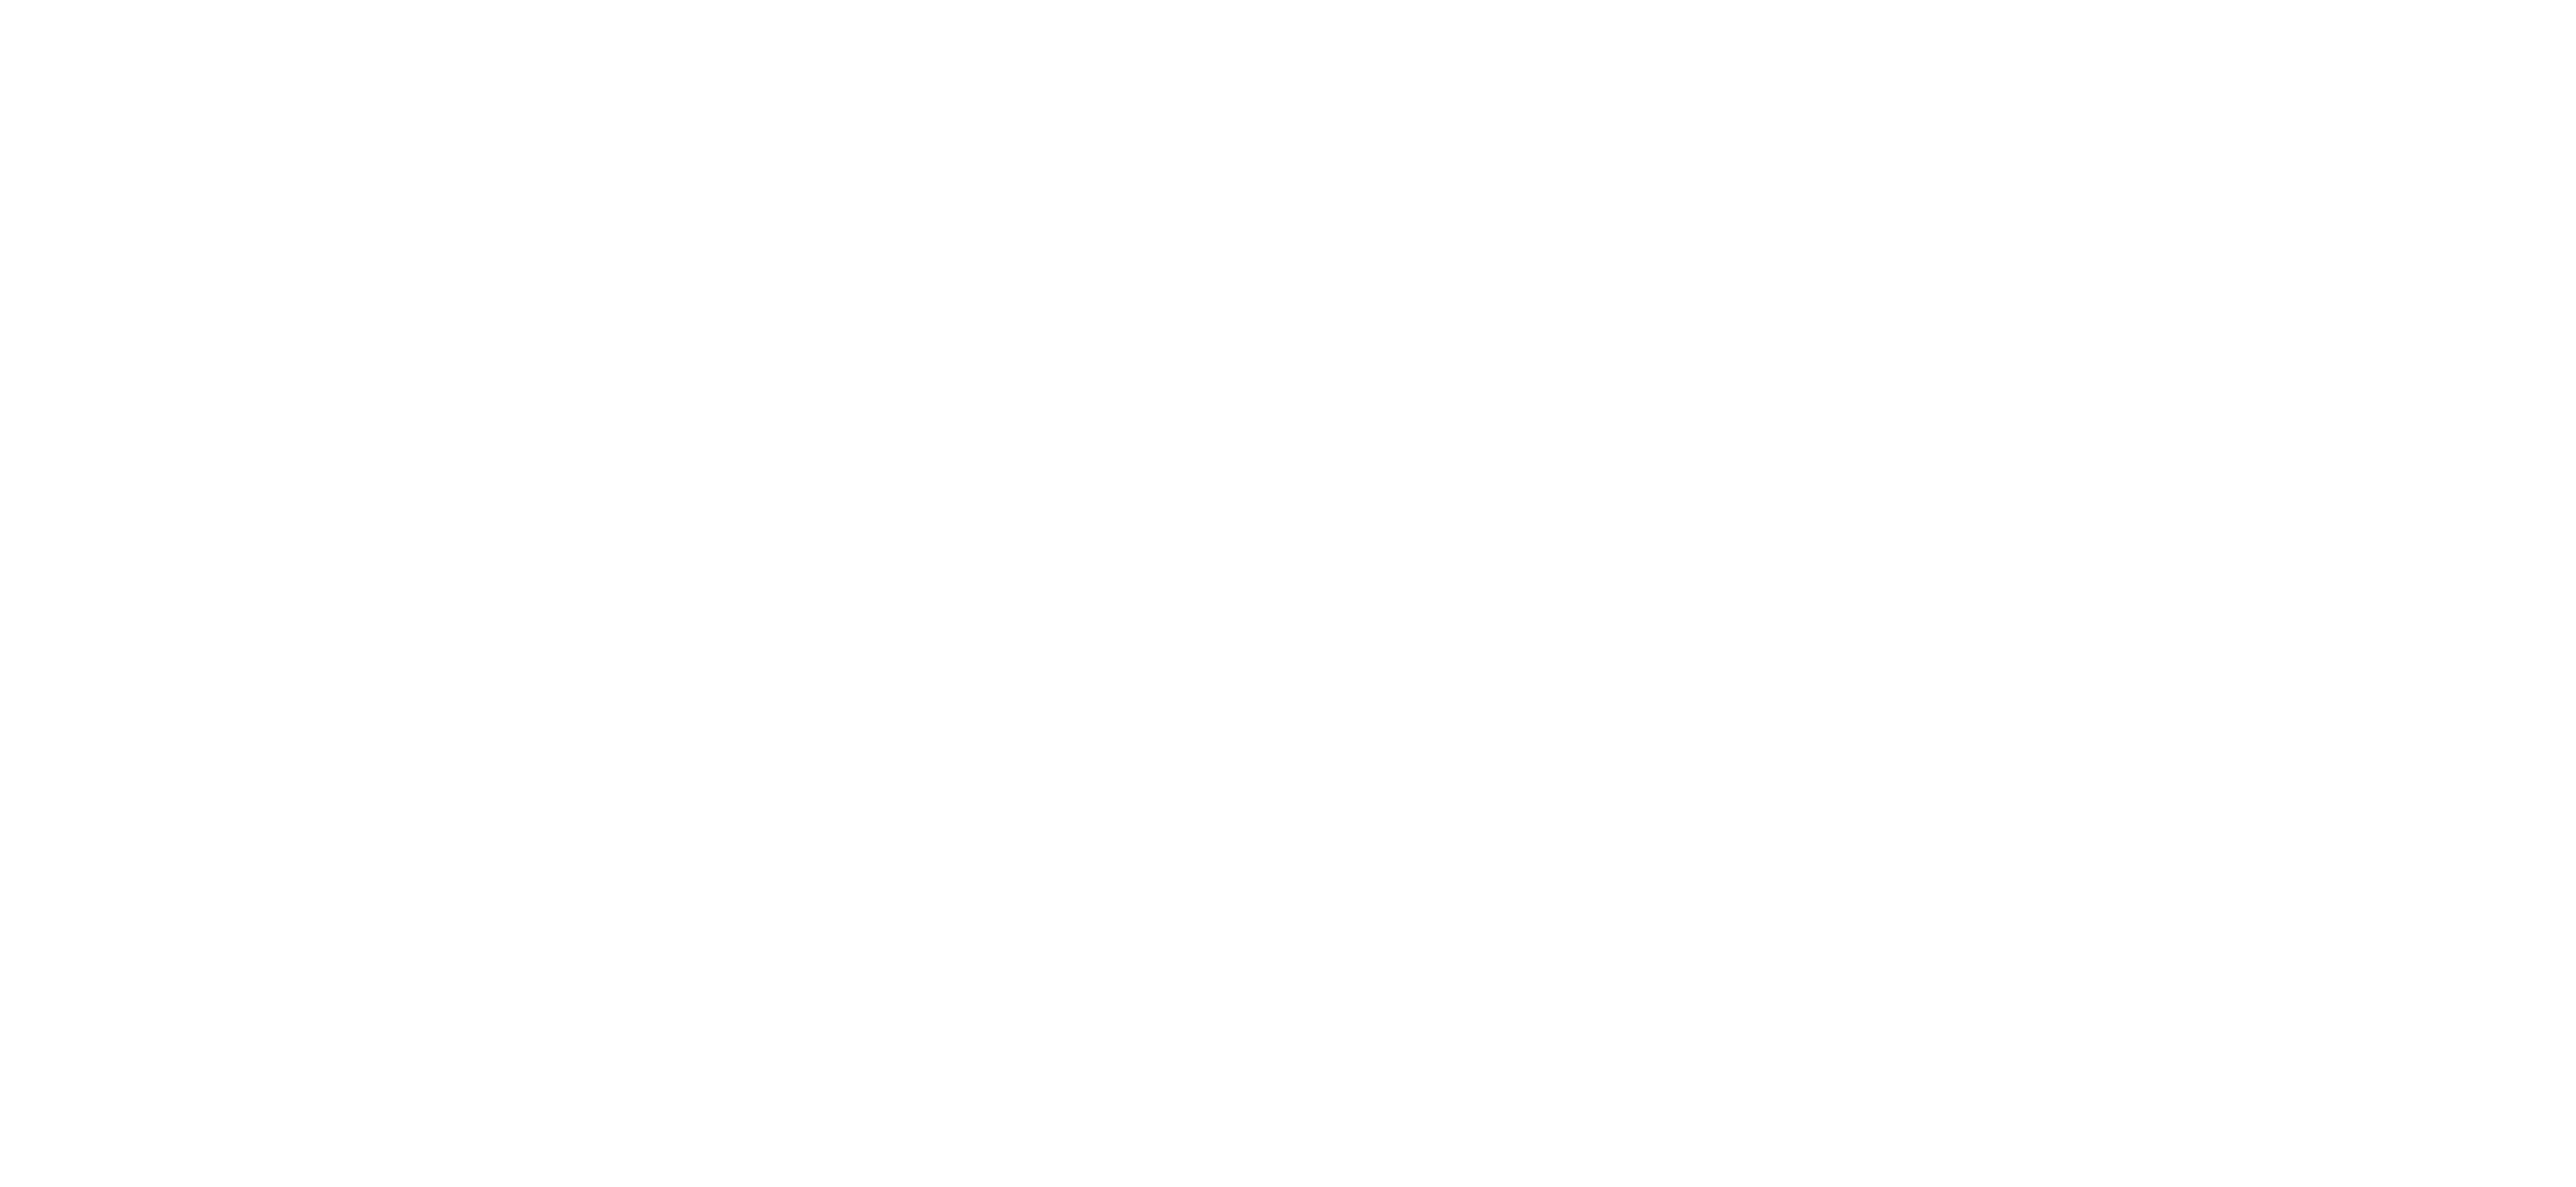 Leon Britton Photography Professional Liverpool Photographer